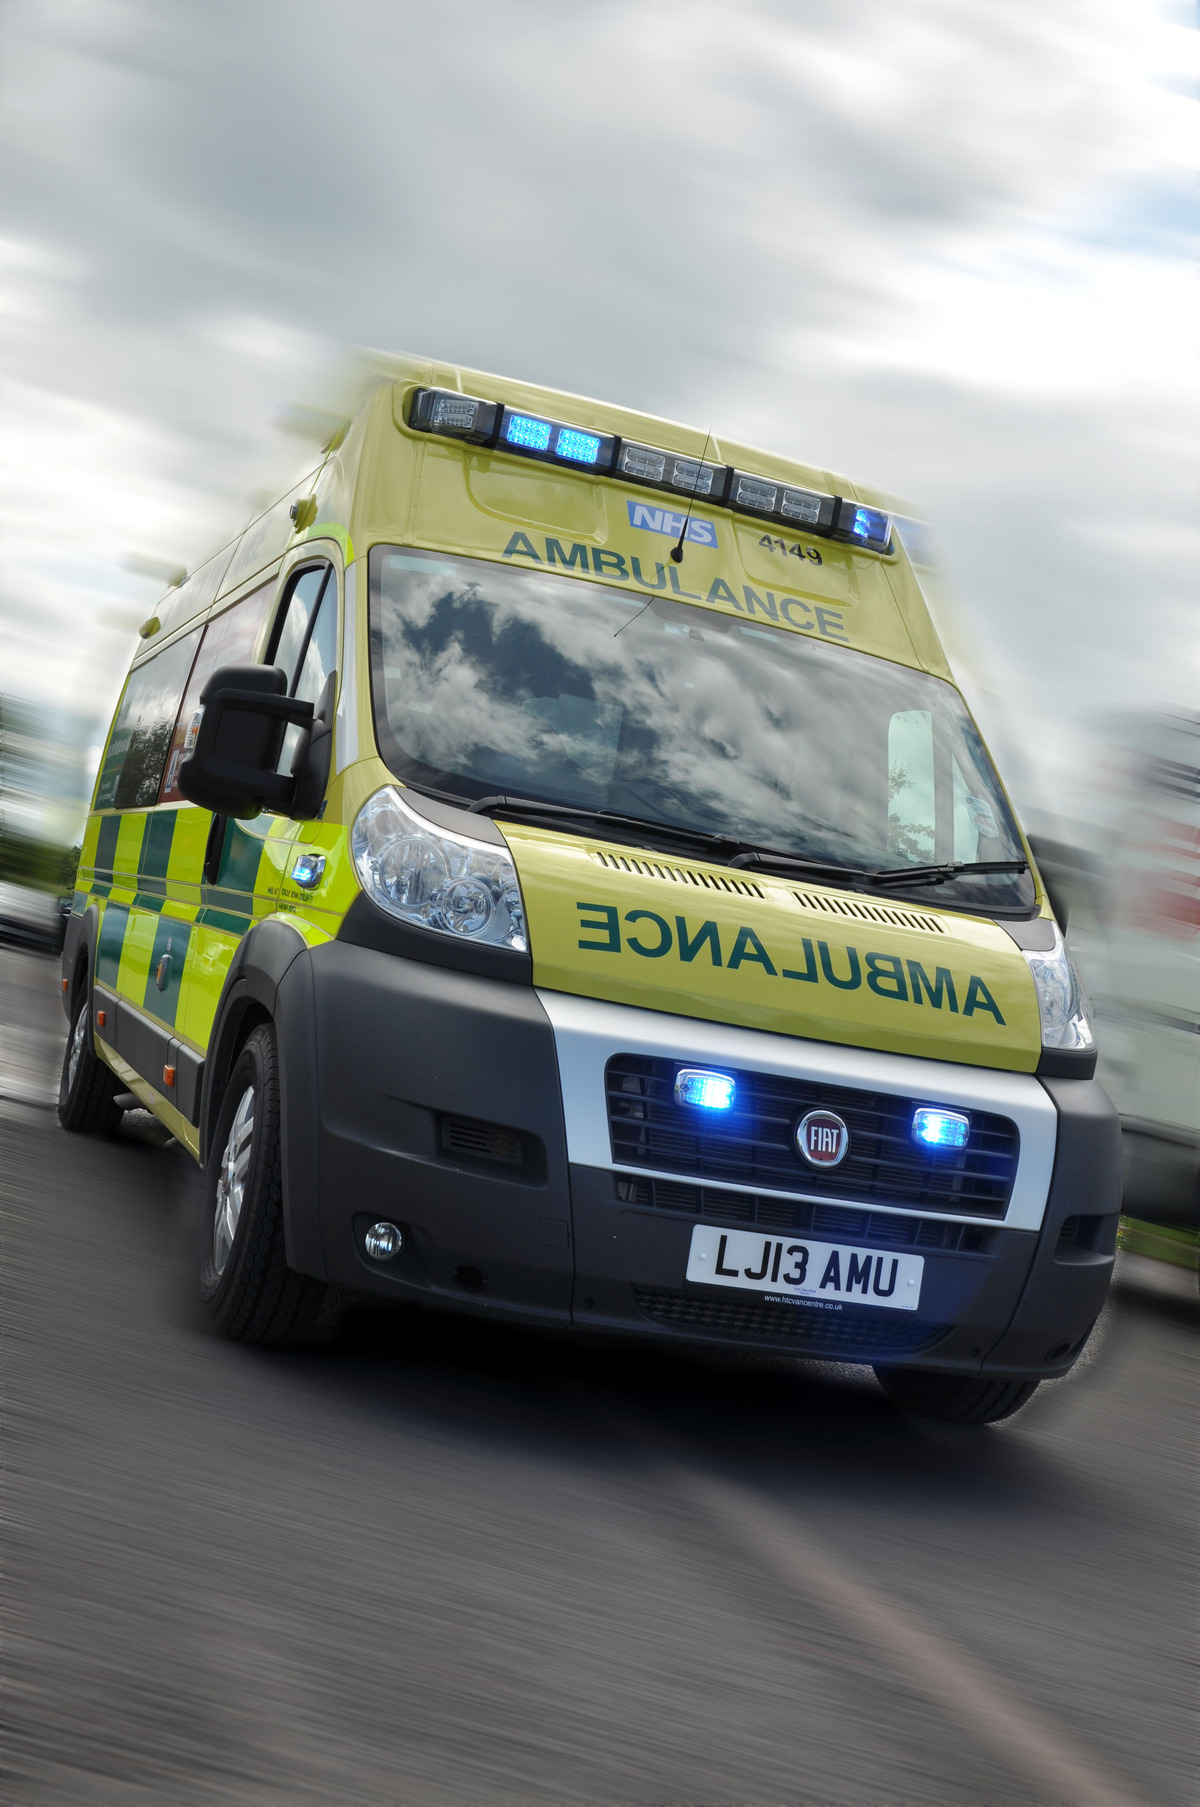 Motorcyclist seriously injured in collision near Kidderminster